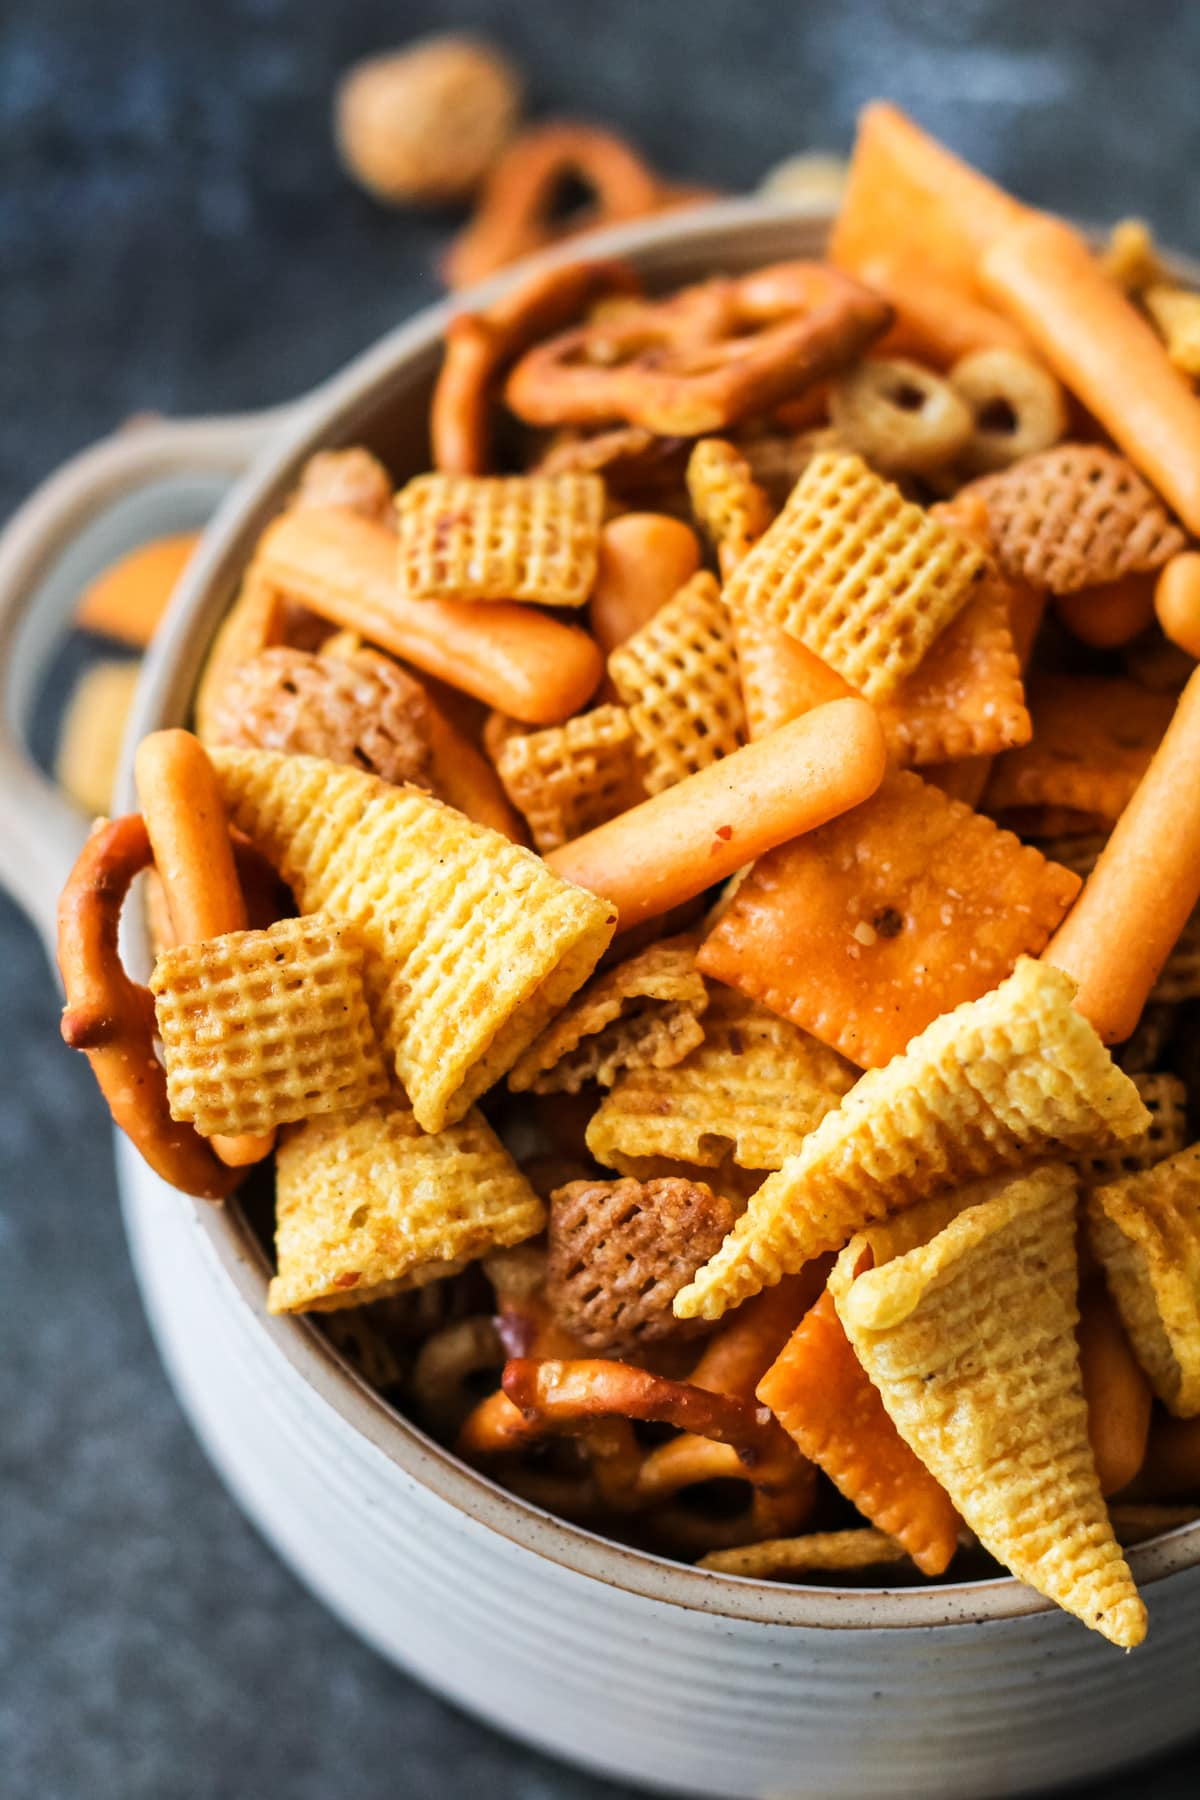 a close up of a bowl of Nuts and Bolts with cheerios, bugles, pretzels, nuts and cereal